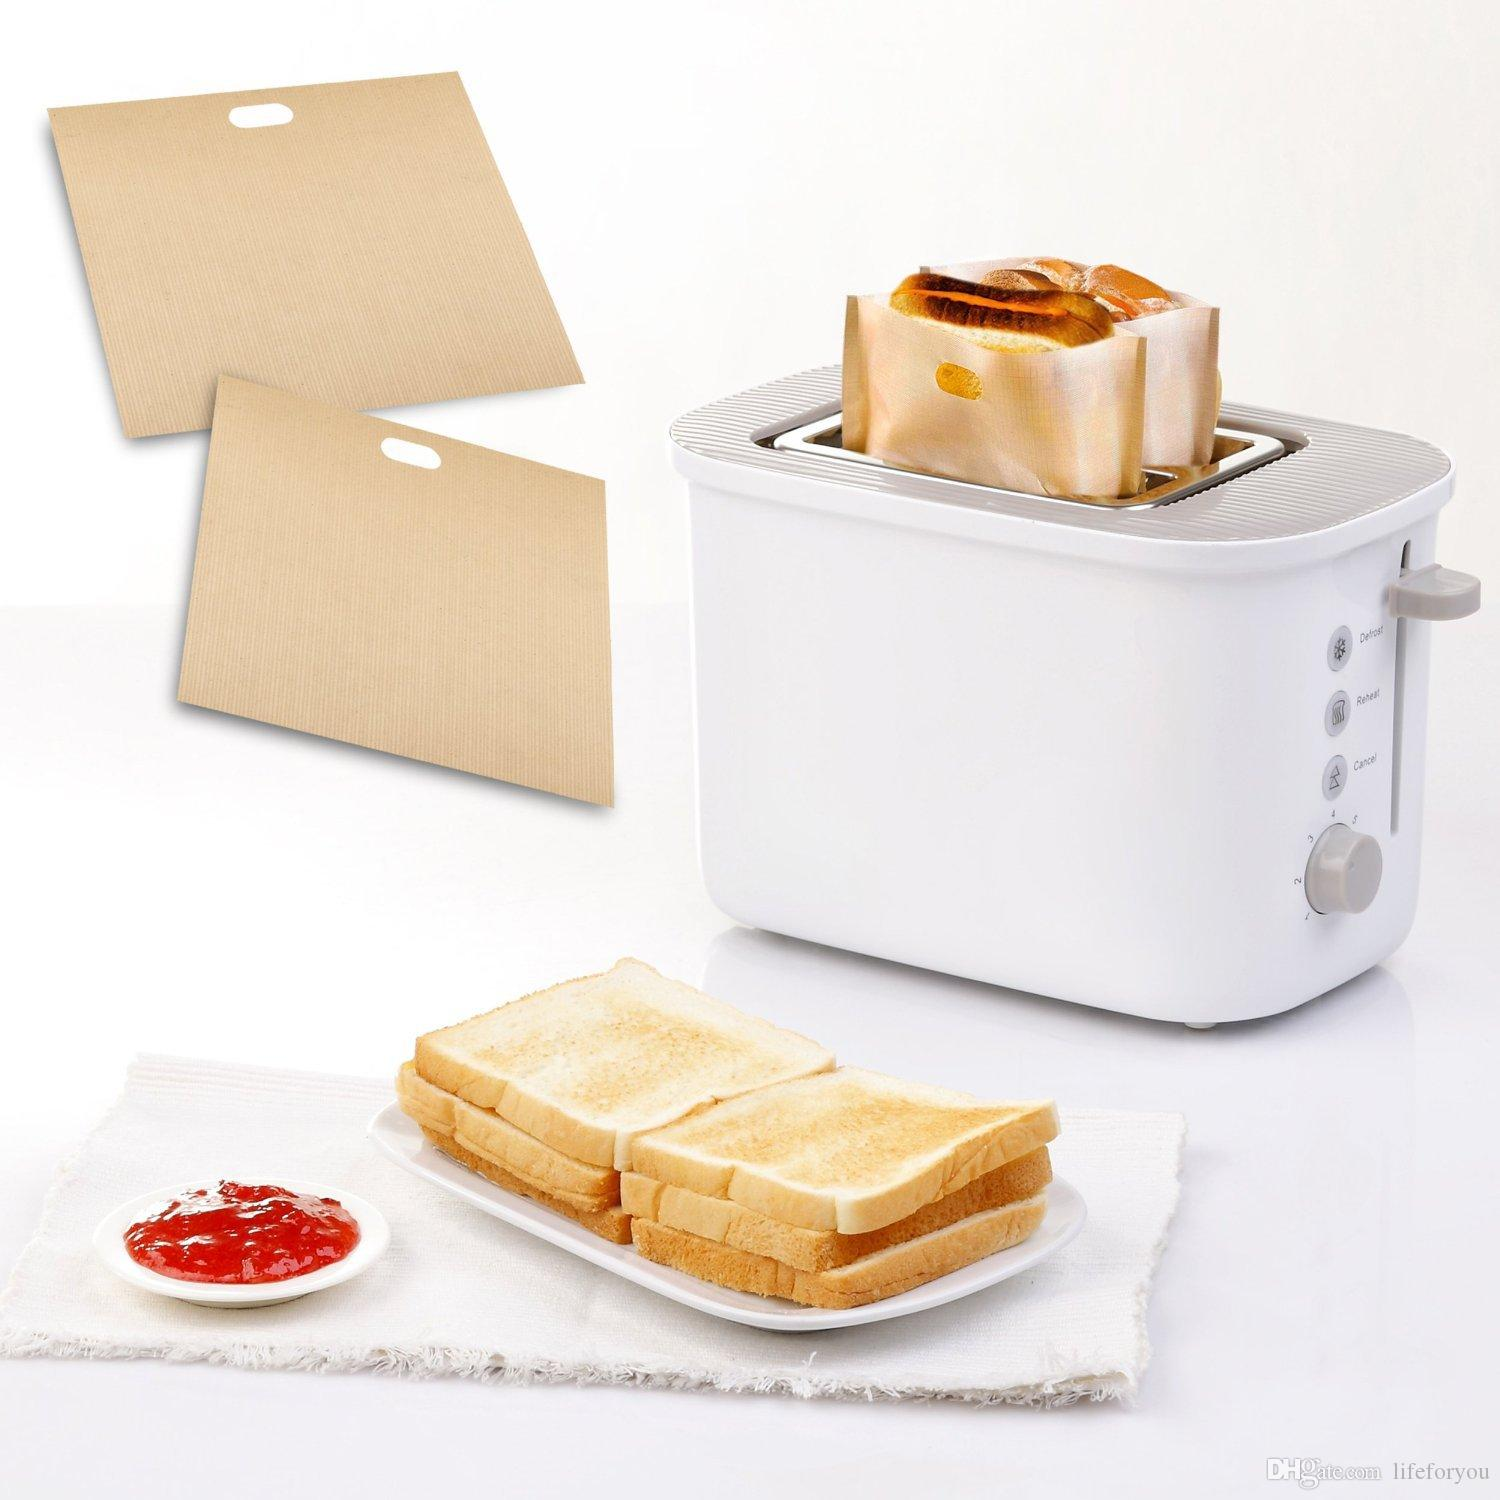 PTFE Sandwich Toasters Bag Safe food grade reusable non stick baking bag  barbecue microwave oven bag BBQ bags 6 7 x 7 5